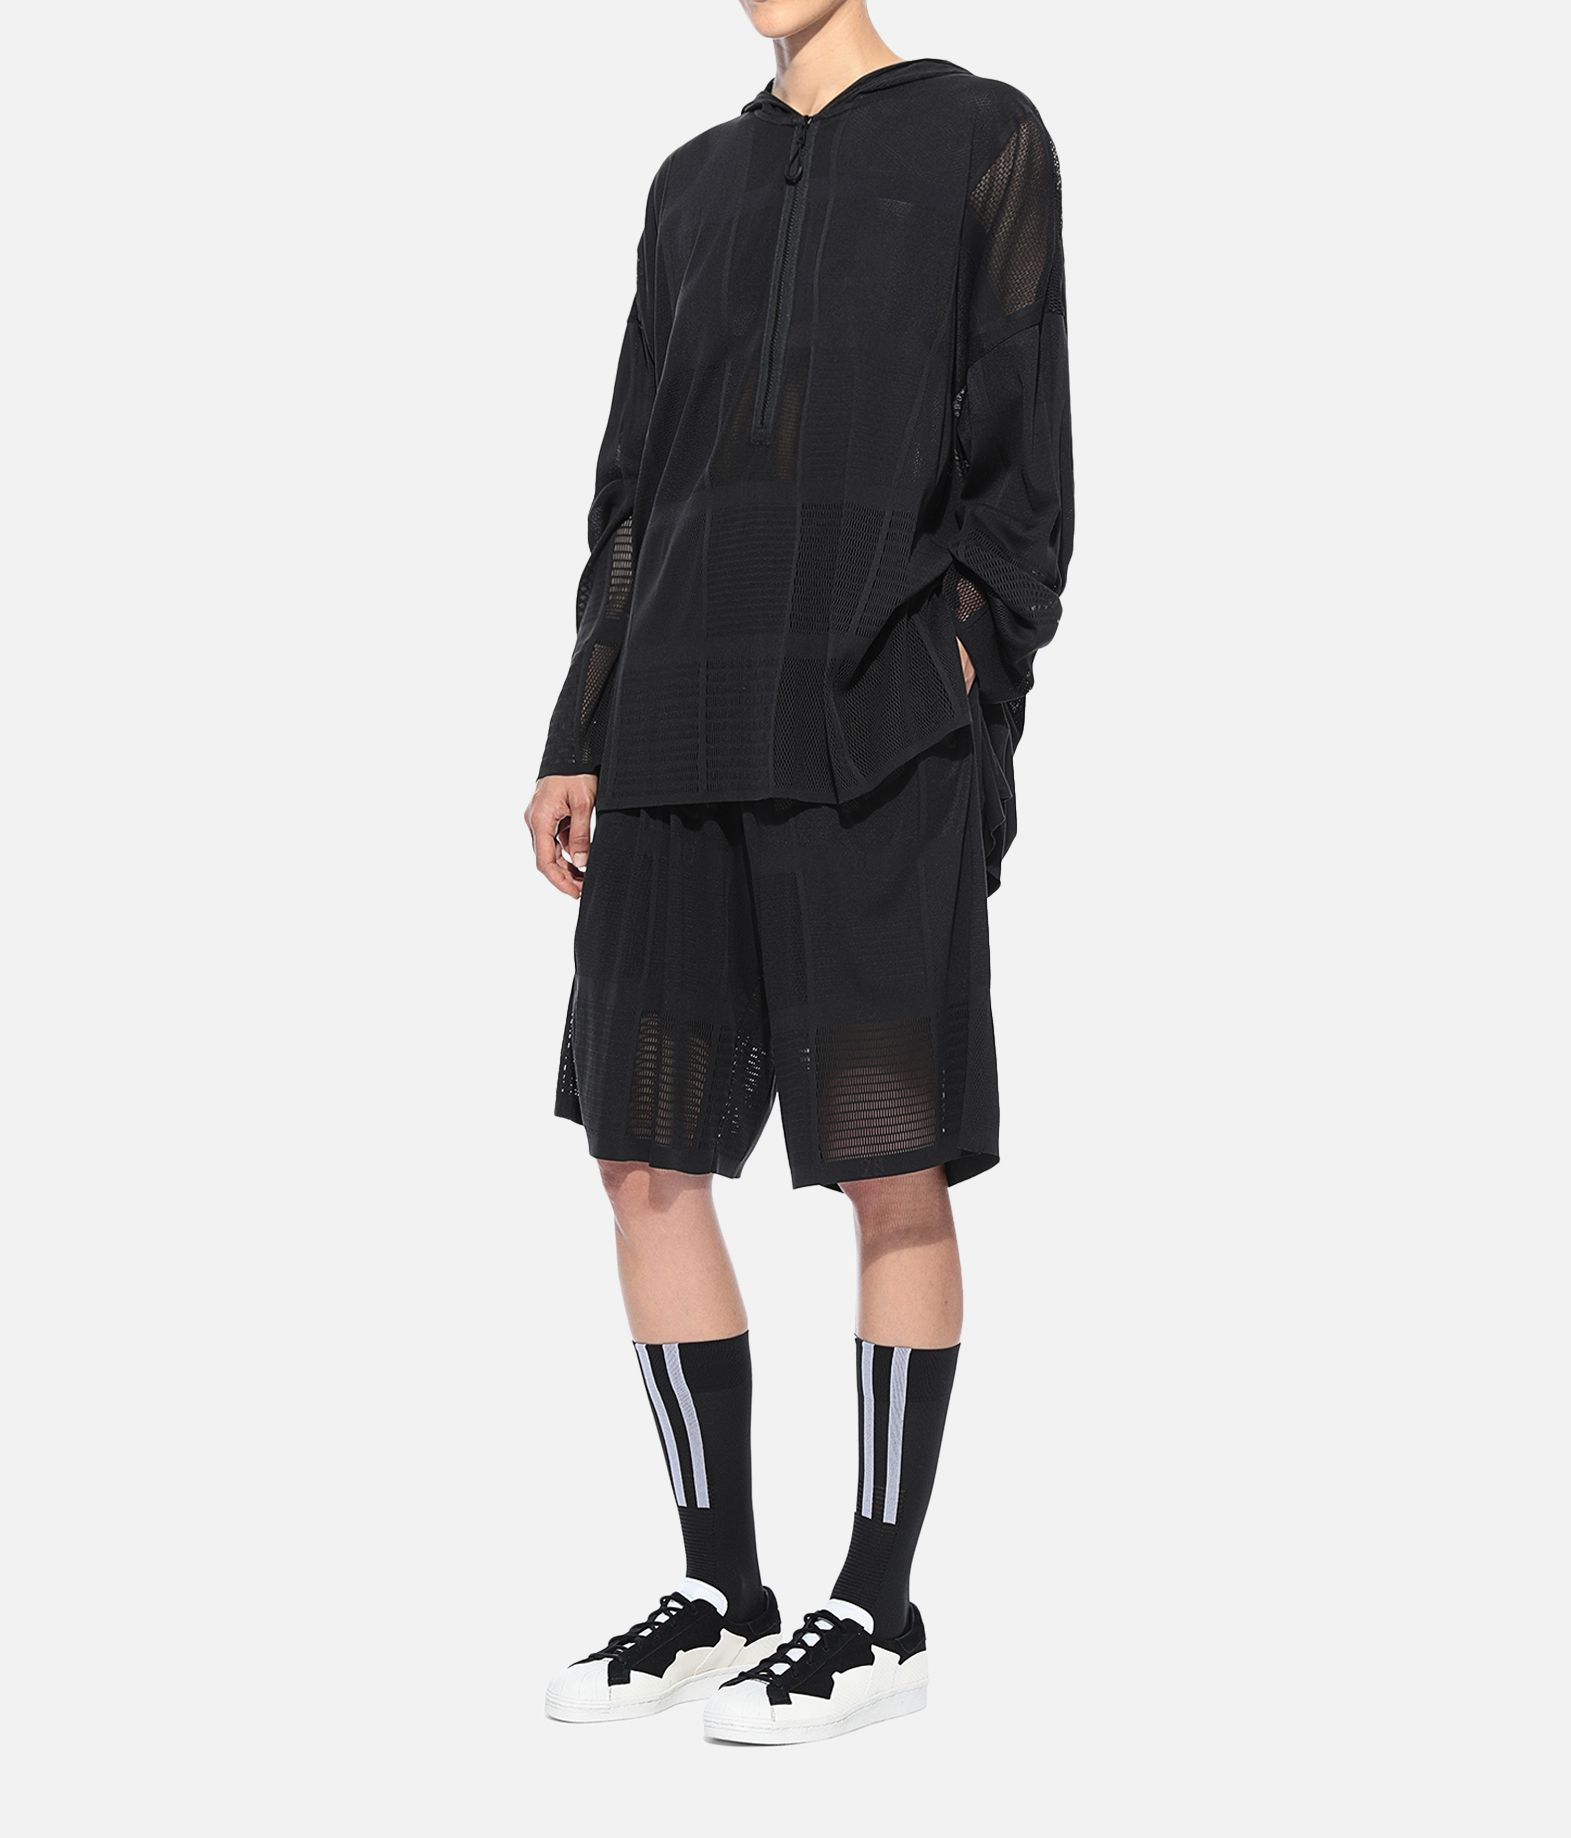 Y-3 Y-3 Patchwork Shorts Bermuda Woman a